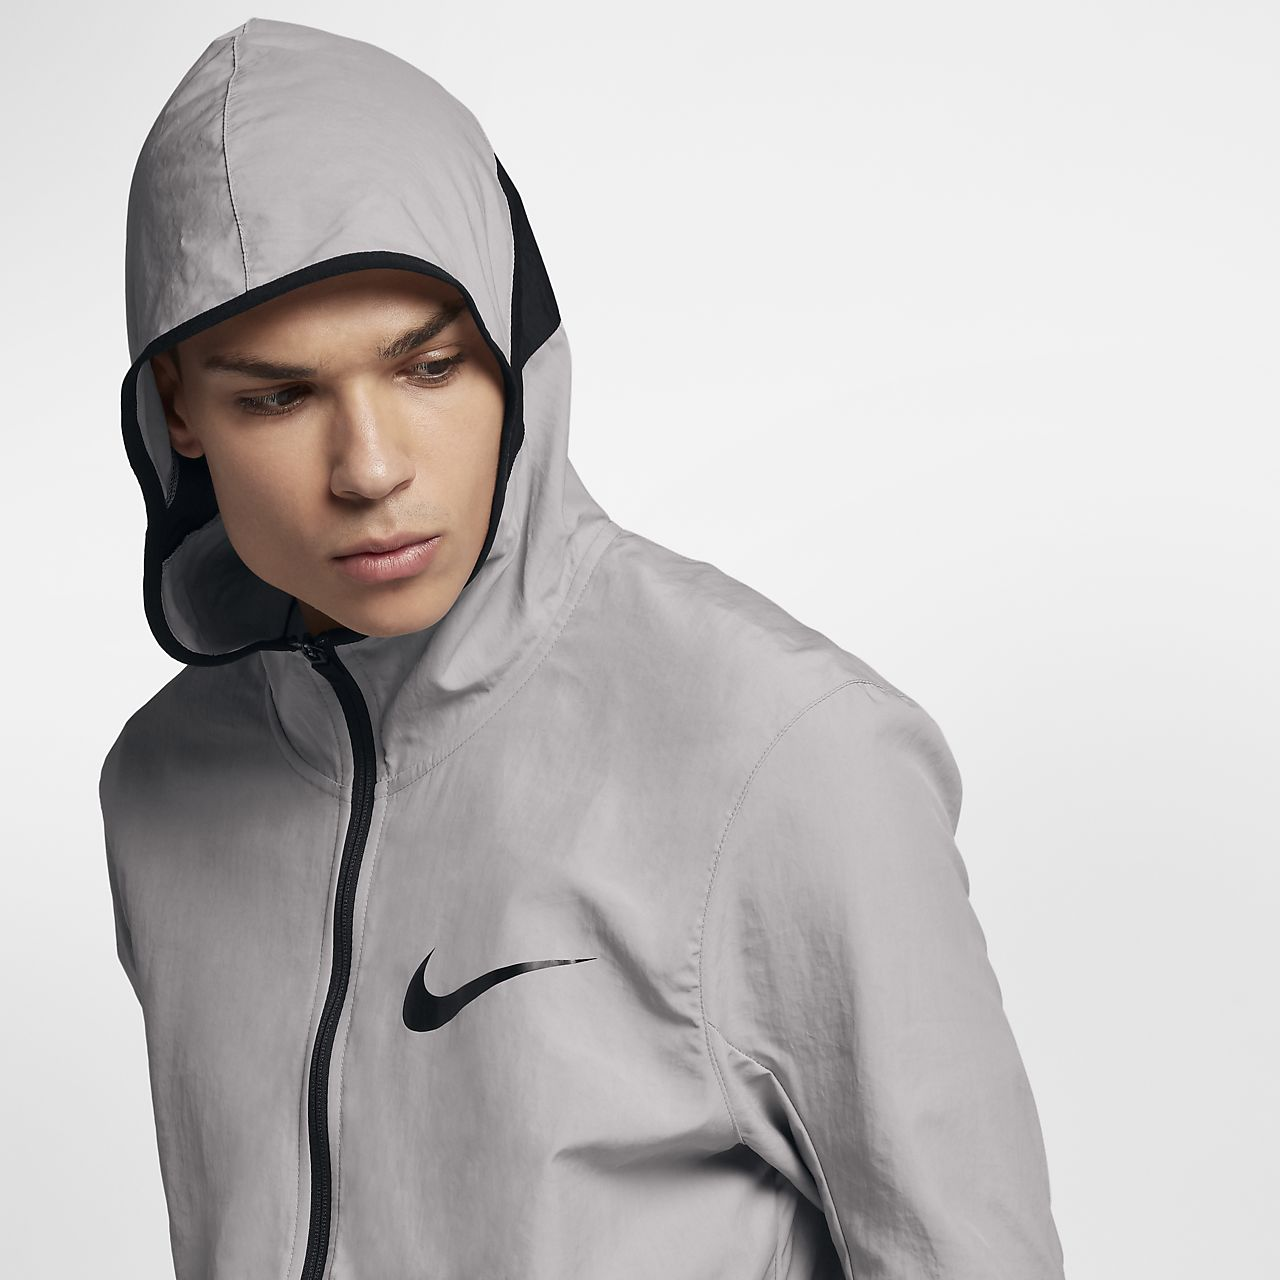 Low Resolution Nike Showtime Men's Basketball Jacket Nike Showtime Men's  Basketball Jacket